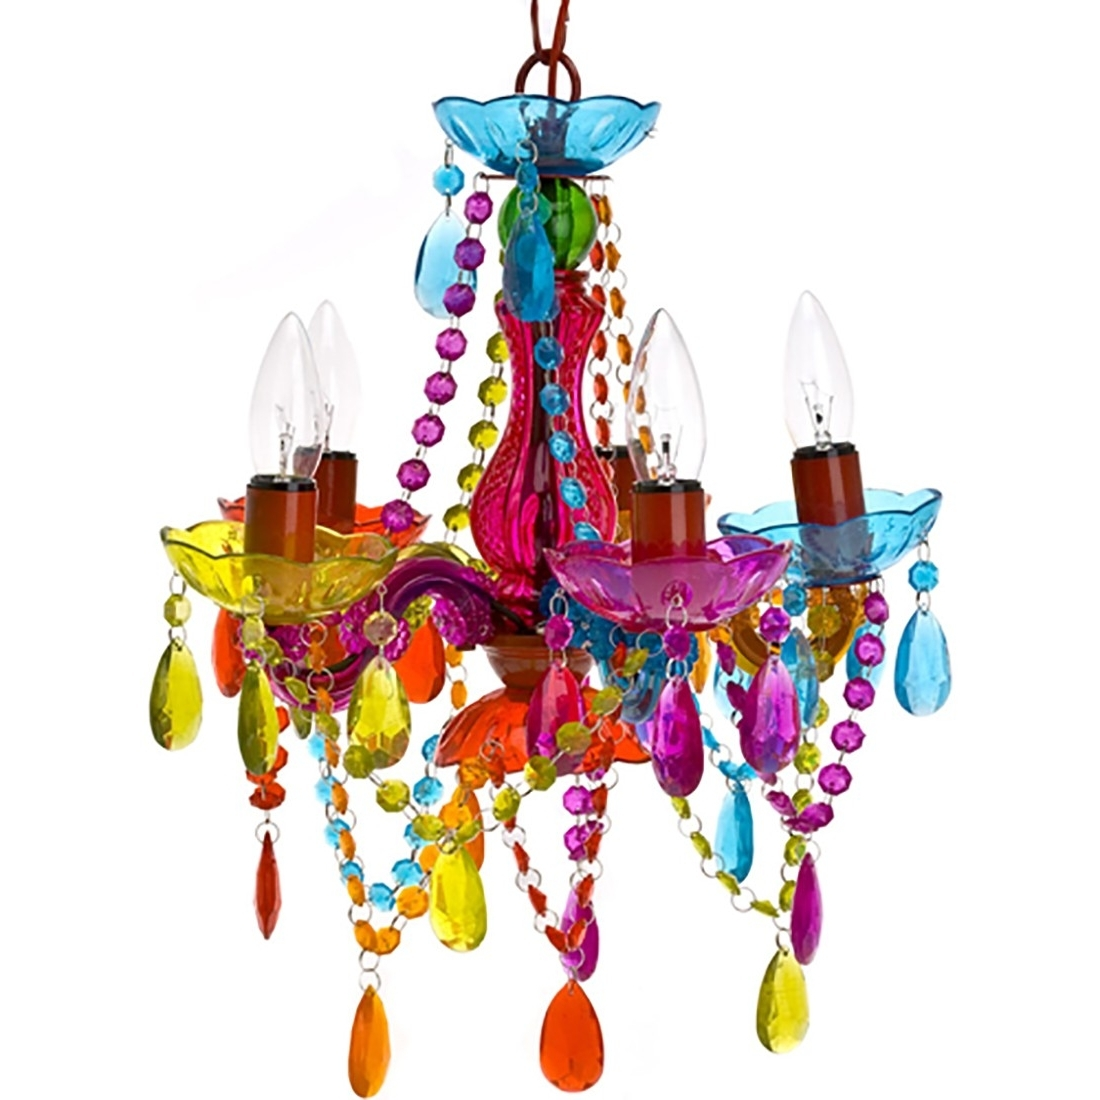 20 best ideas of multi colored gypsy chandeliers multi colored gypsy chandeliers regarding best and newest gypsy chandelier multicolored view 13 of 20 arubaitofo Choice Image